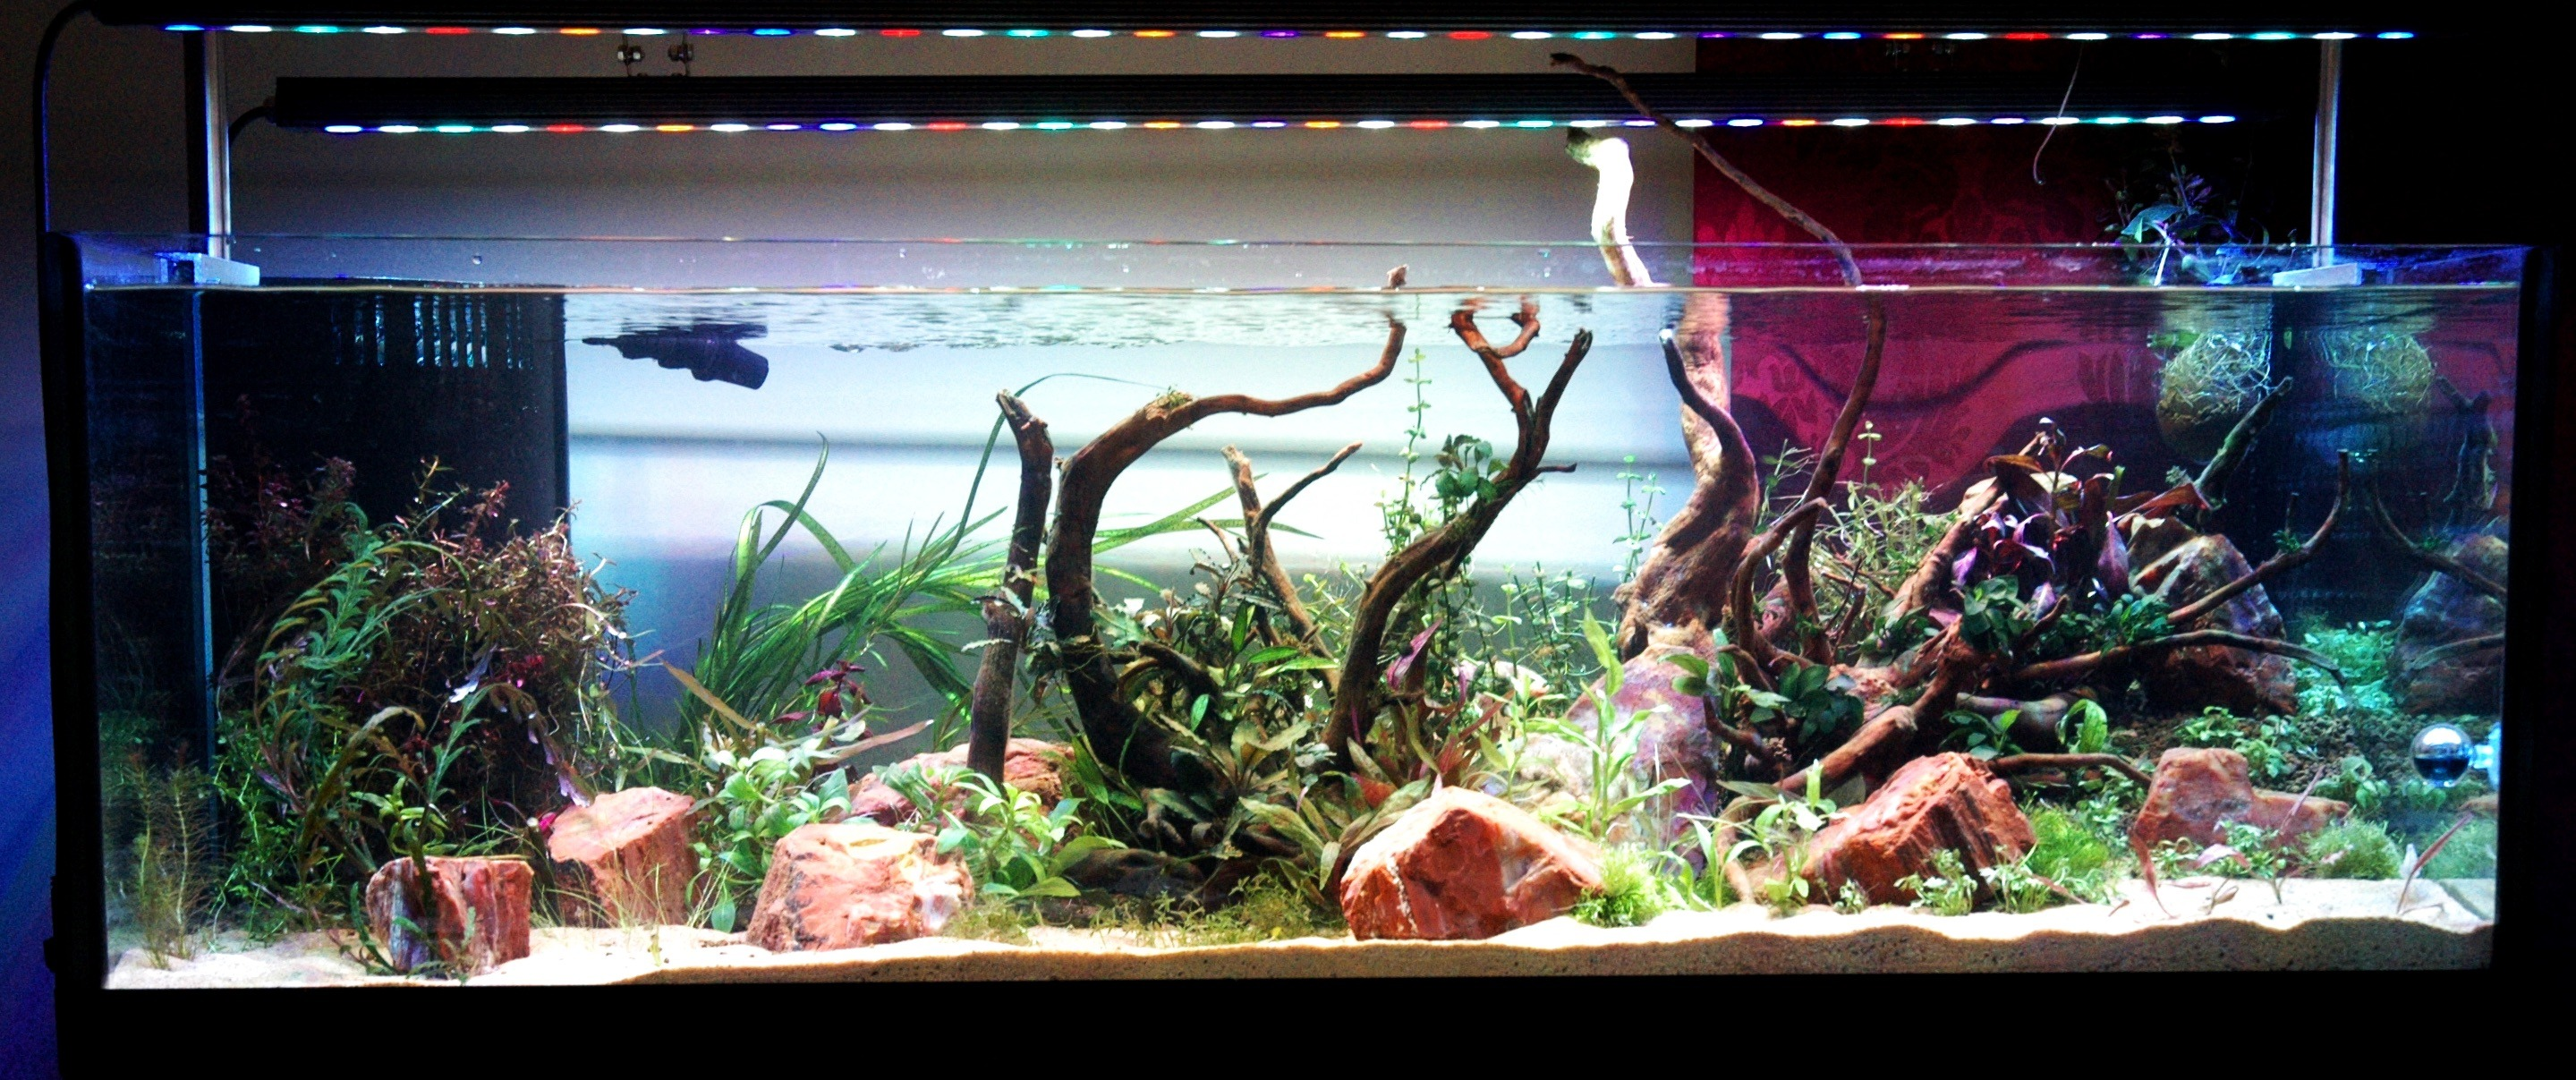 ferskvand akvarium med OR bar LED lys